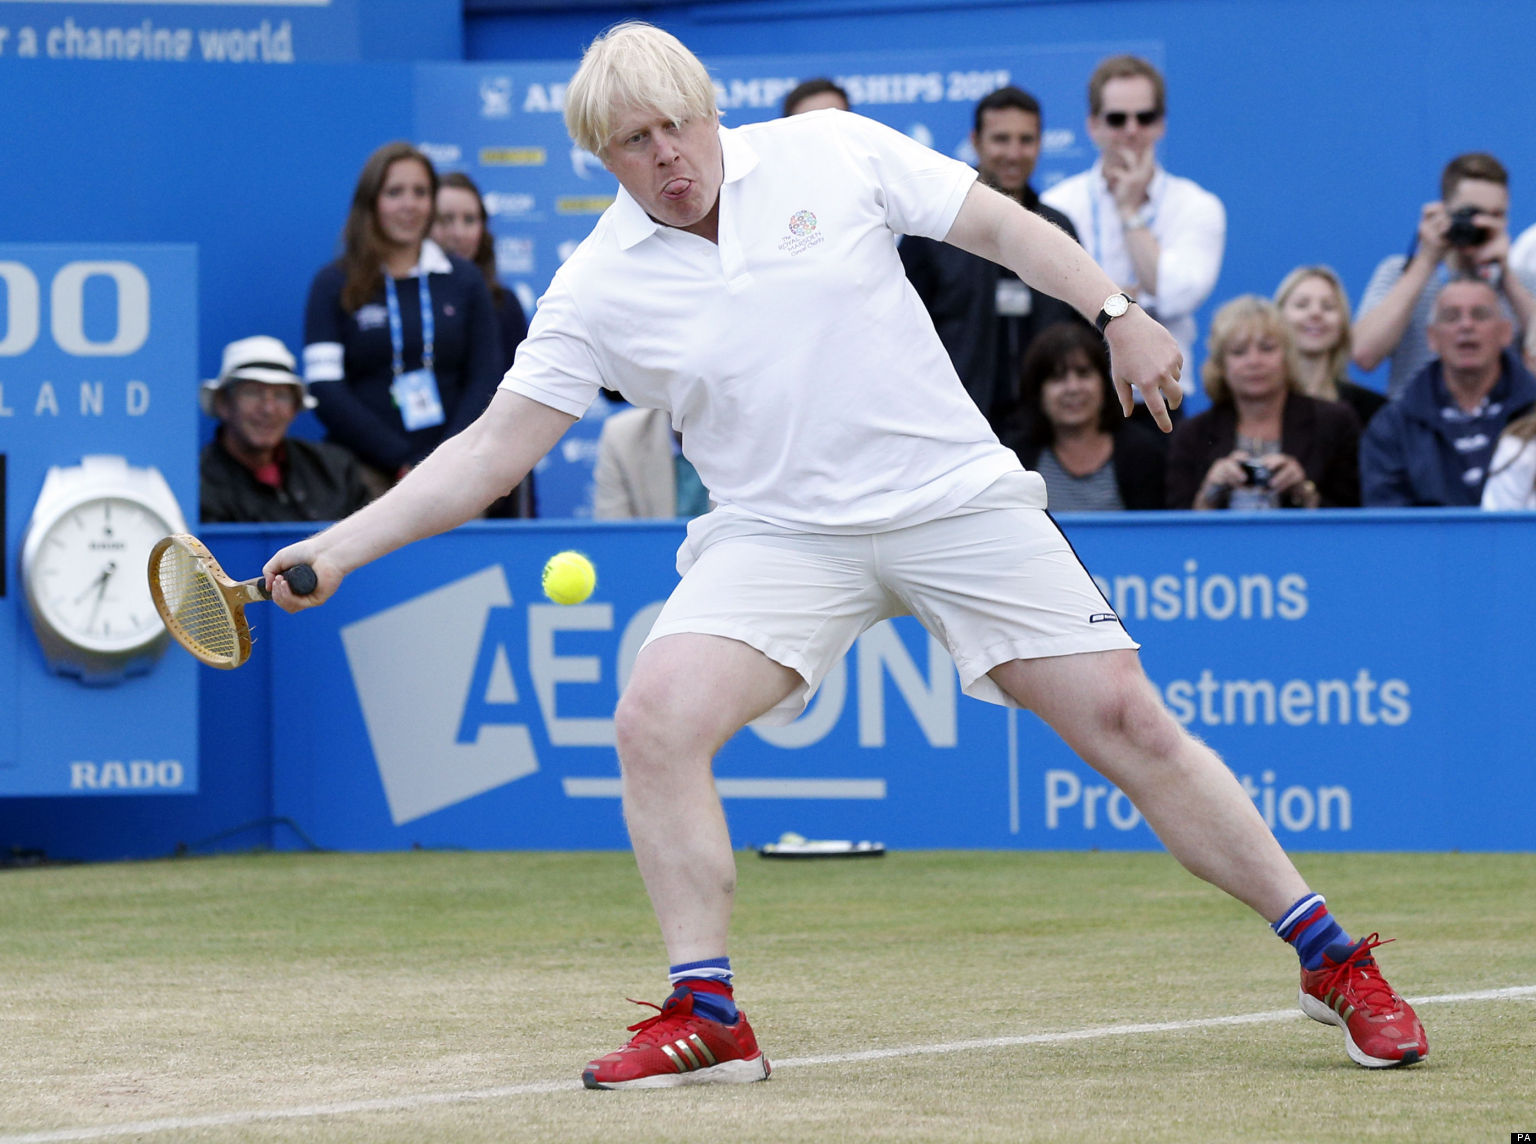 boris johnson playing tennis is the most ridiculous thing